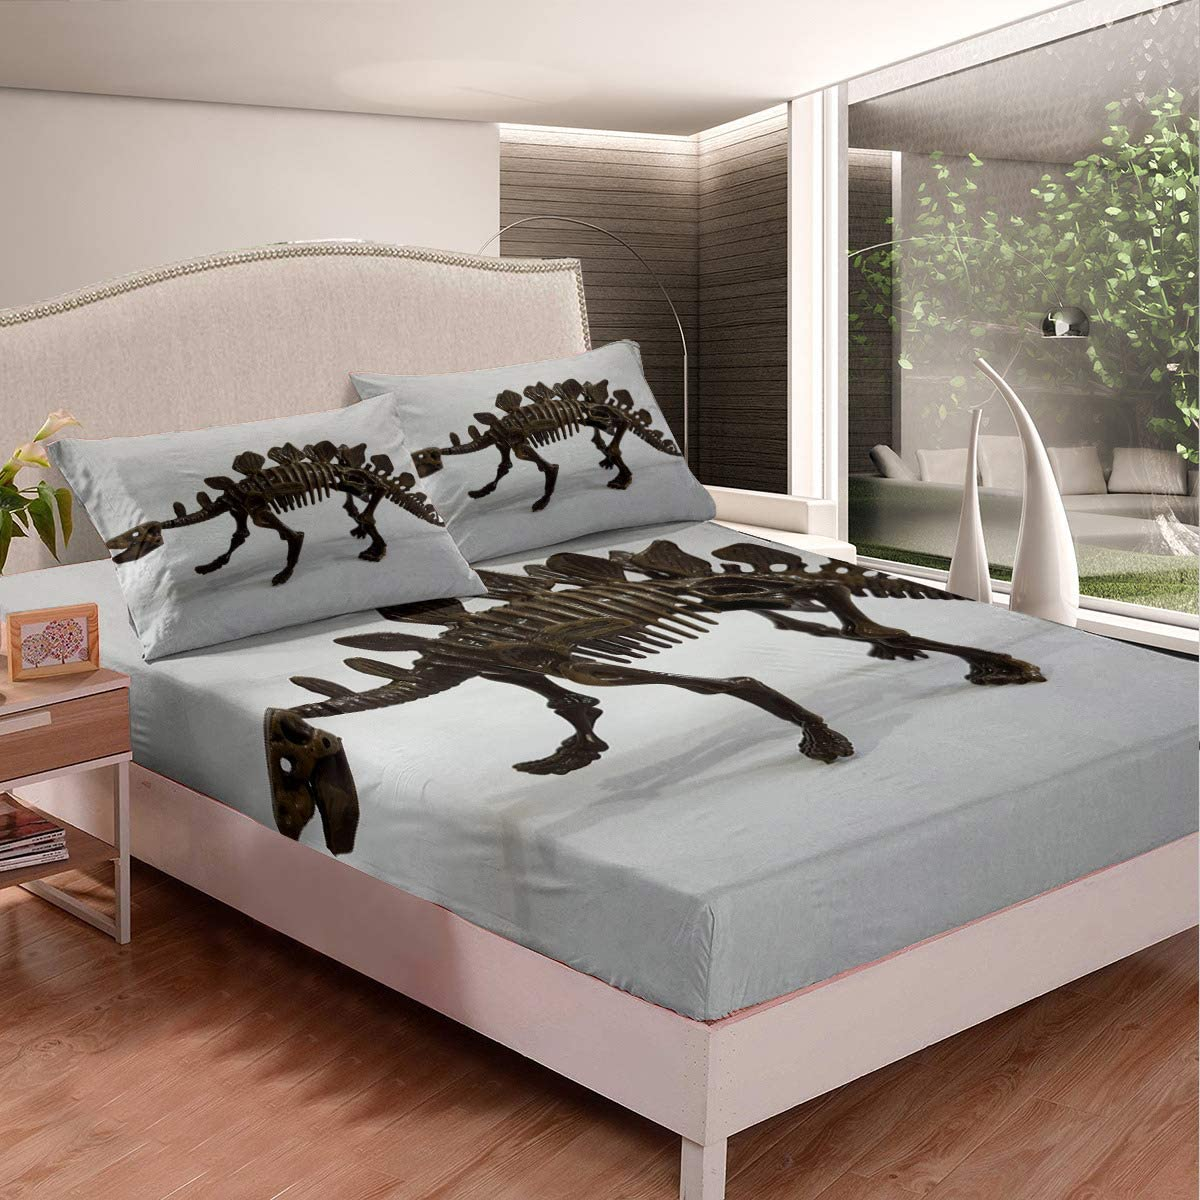 3 Soldering Piece Fitted Sheet Topics on TV Full Bones Dinosaurs Fossils Minimali White